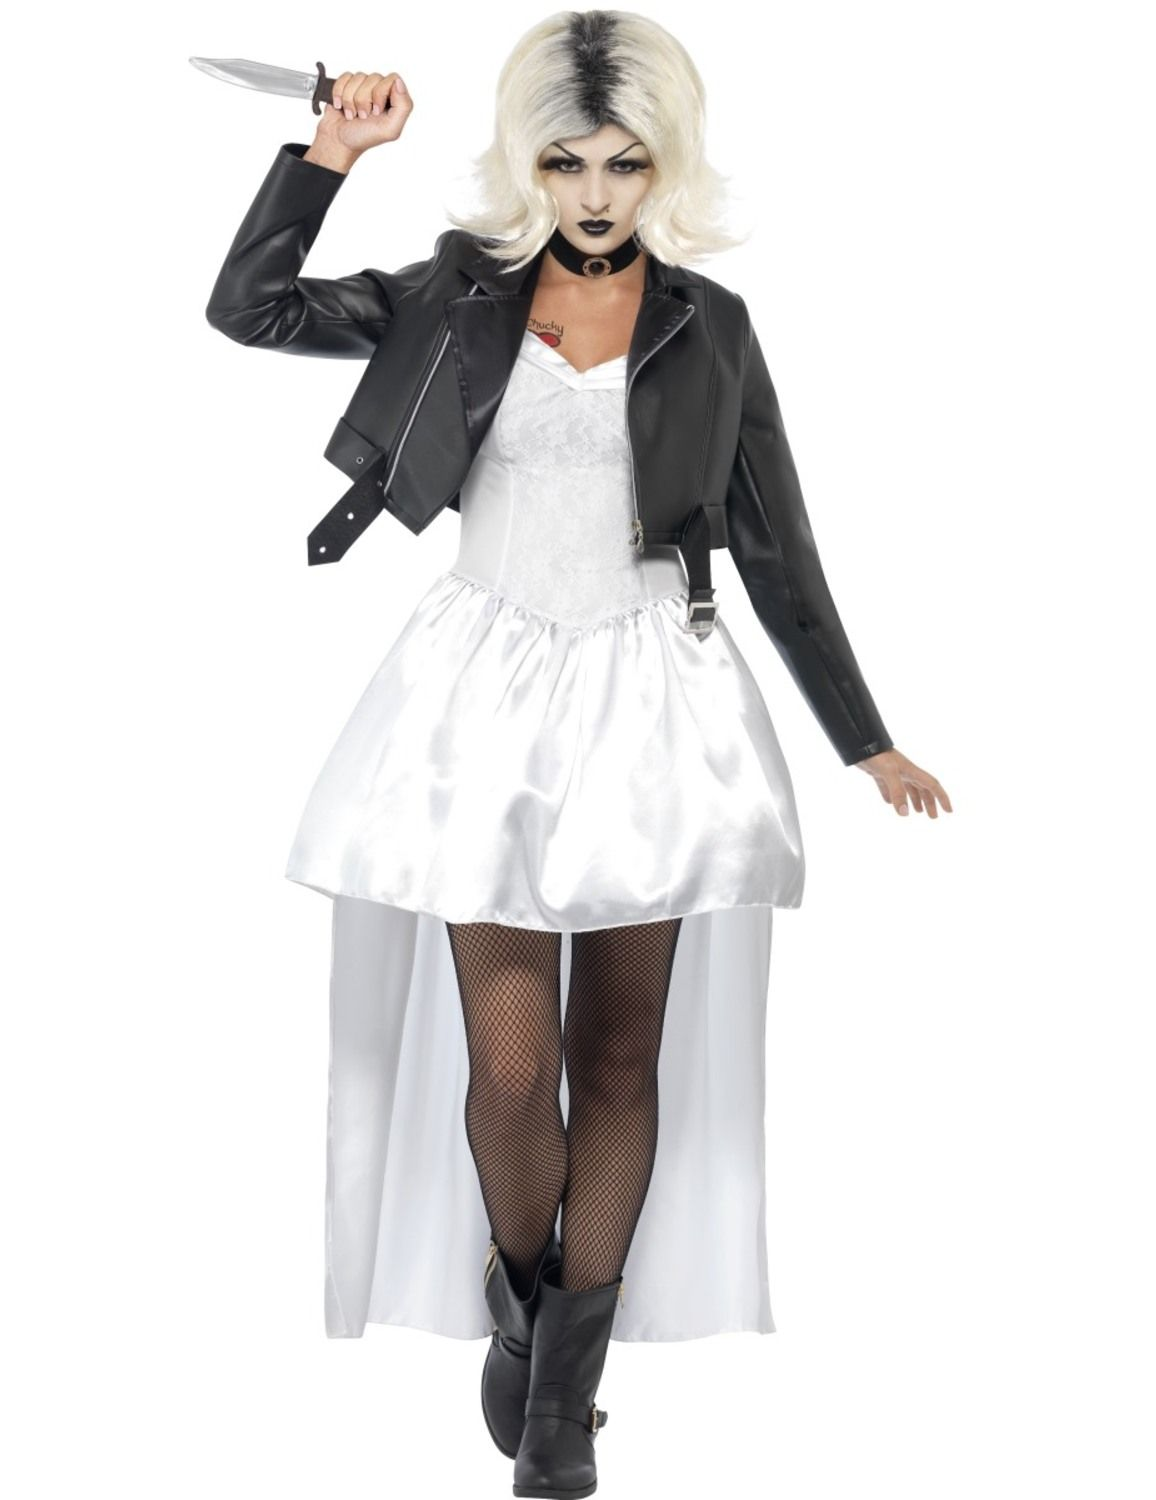 Adult Bride of Chucky Costume | Chucky costume, Costumes and ...